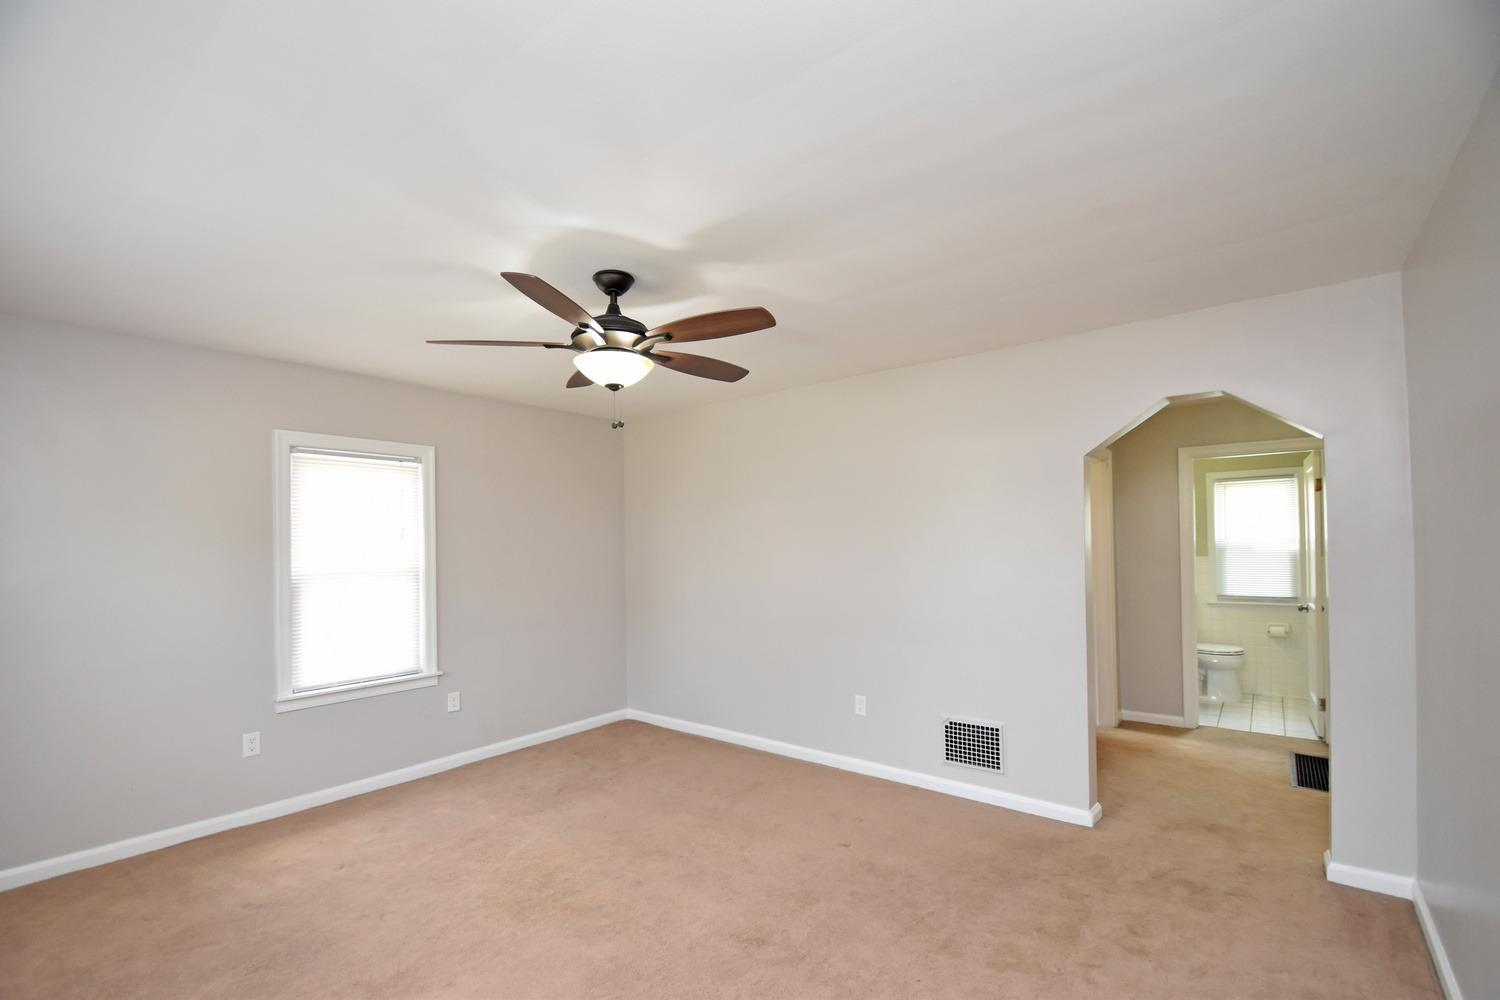 Photo 3 for 1024 Iliff Ave Harrison Twp, OH 45030